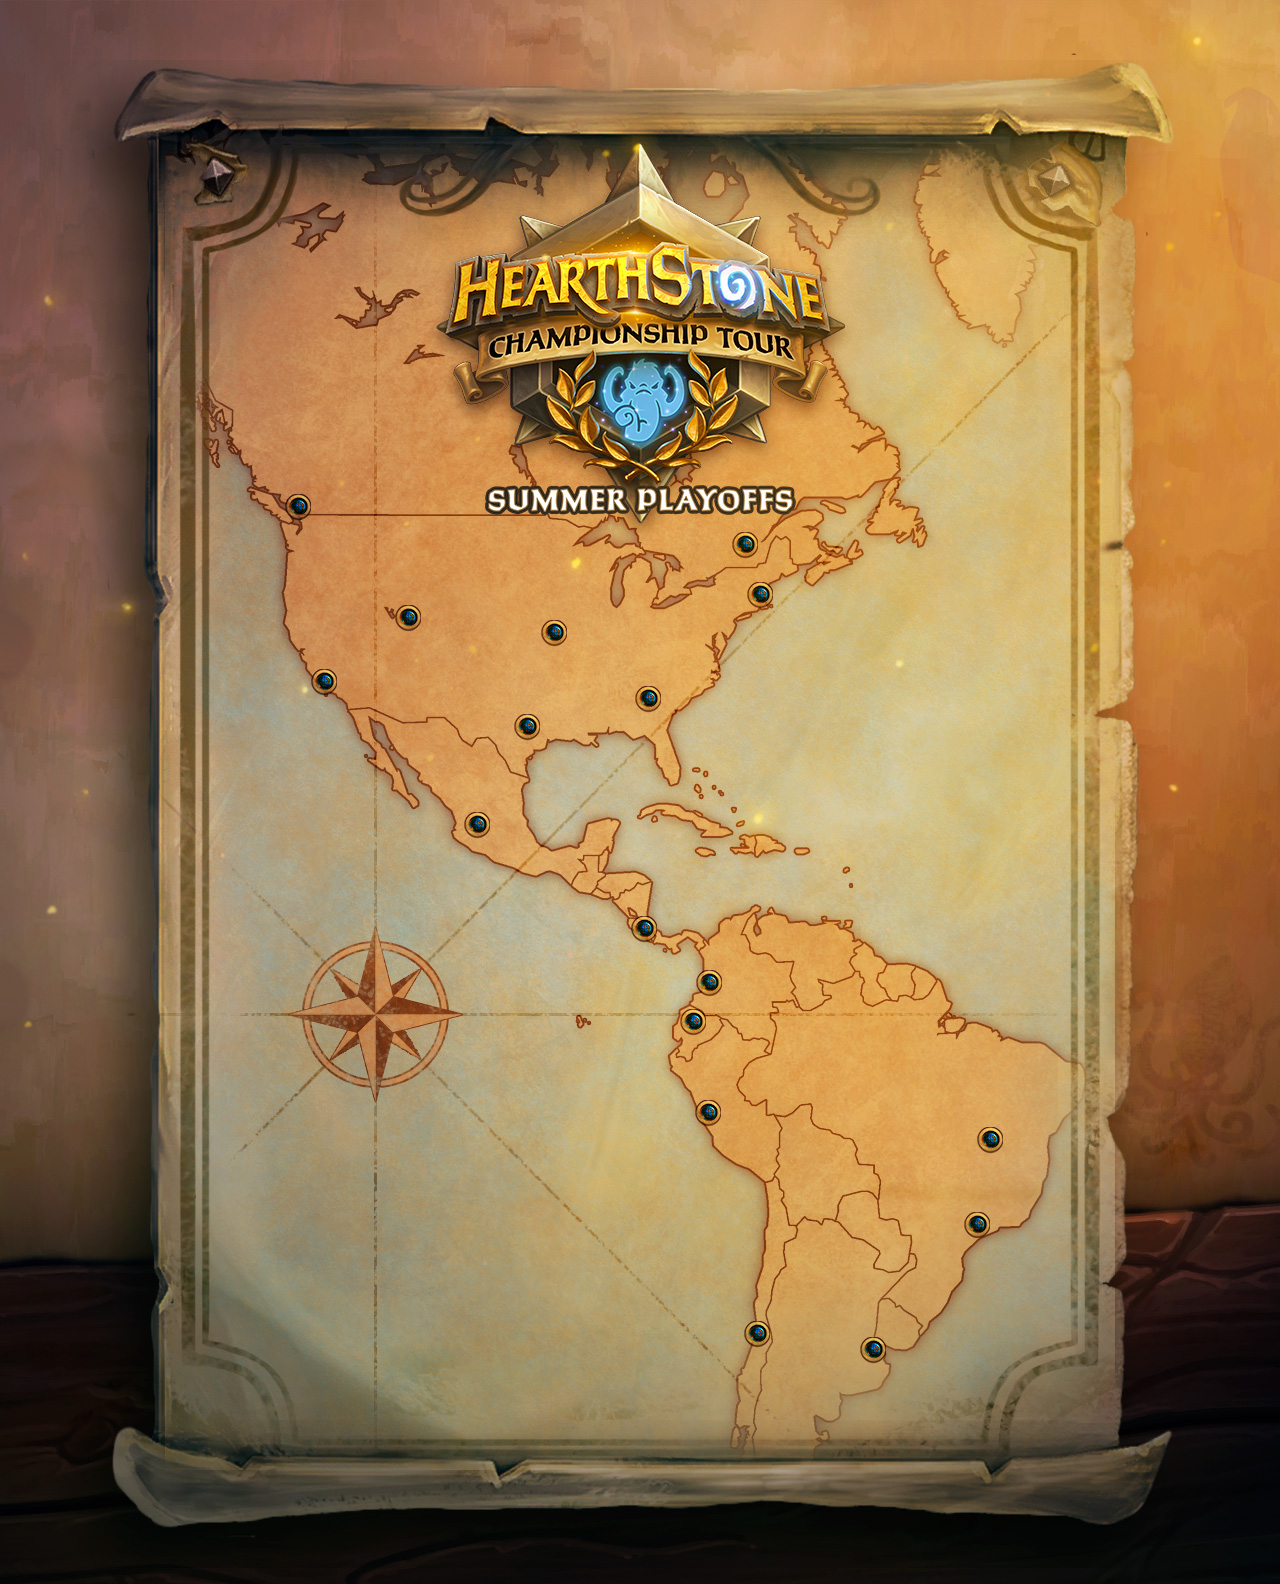 HCT_SummerPlayoffs_HS_Map_EK_1280x1584.jpg